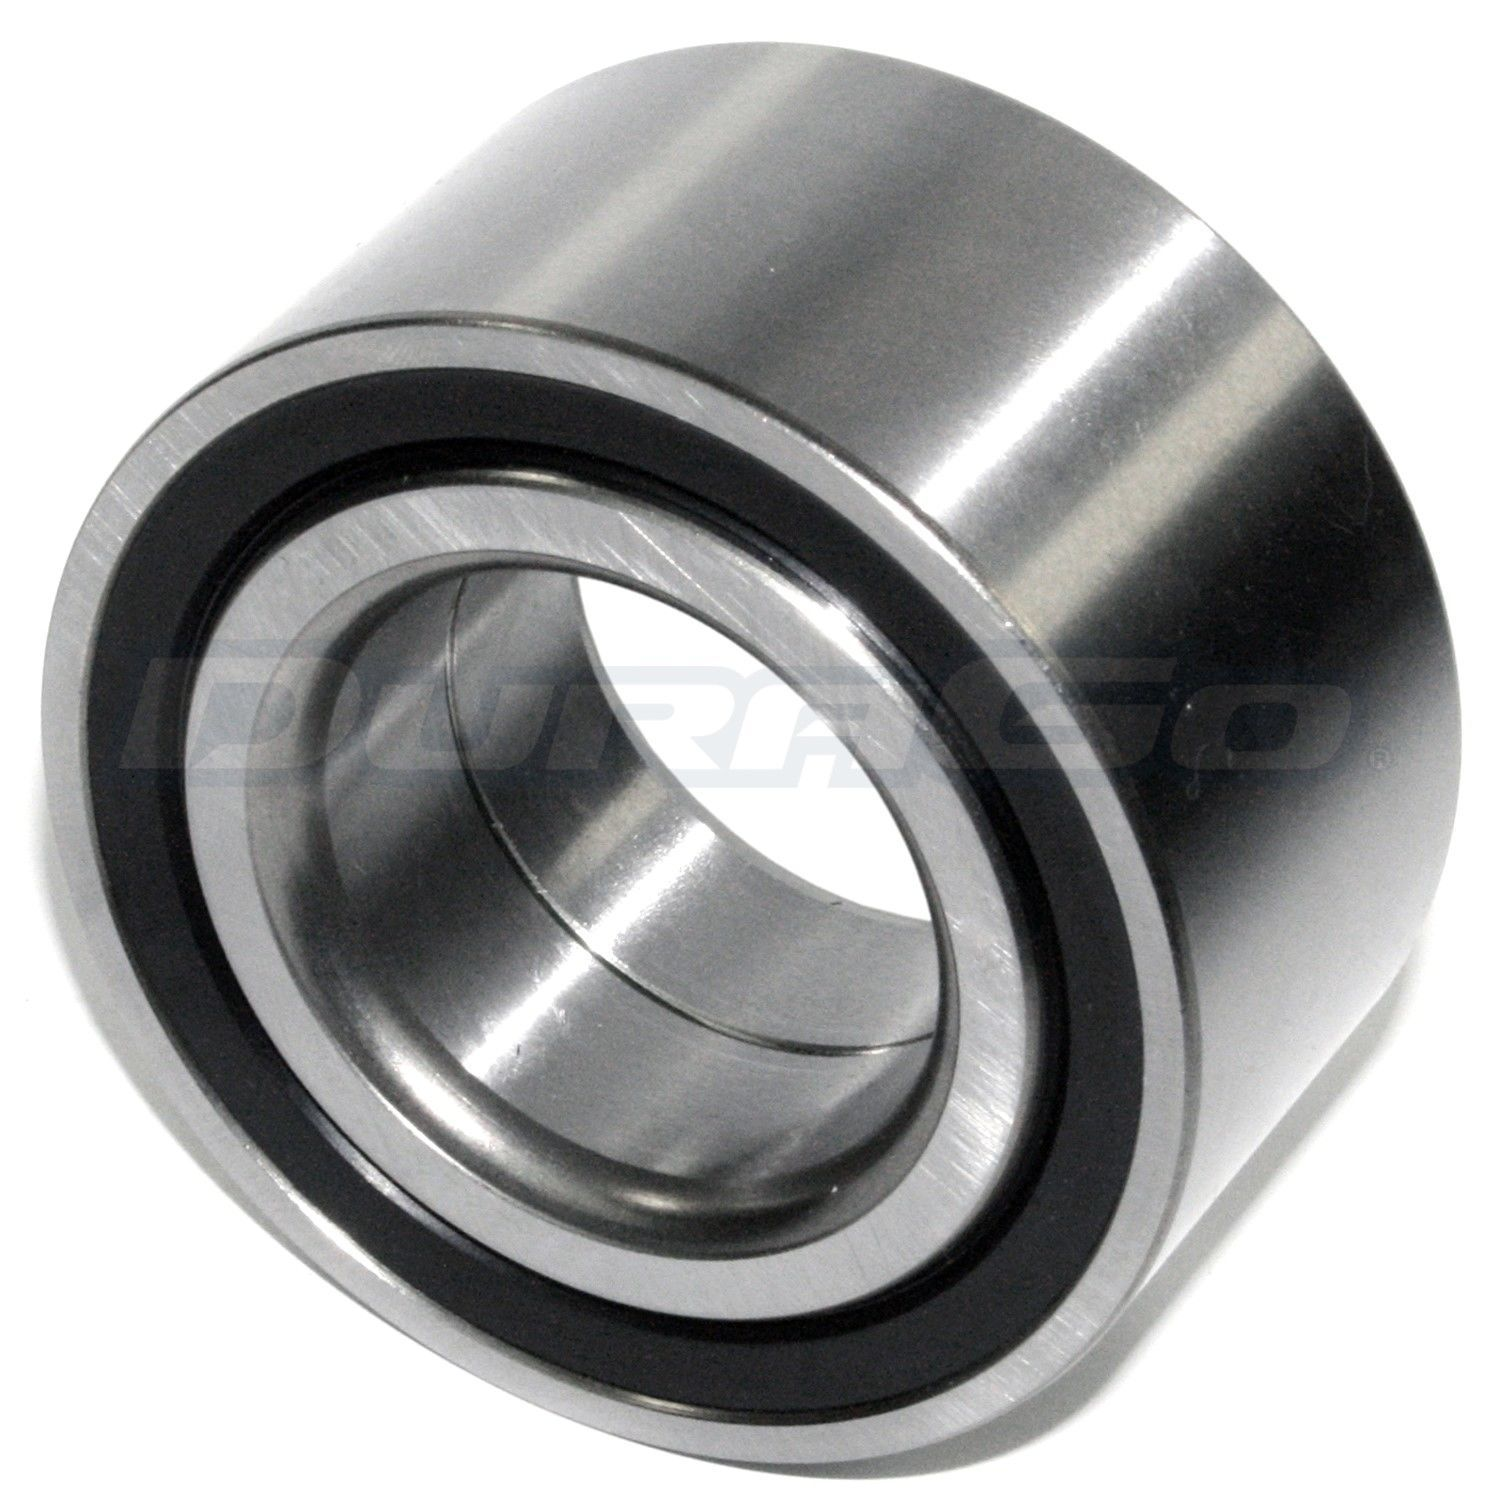 DURAGO - Wheel Bearing - D48 295-10090